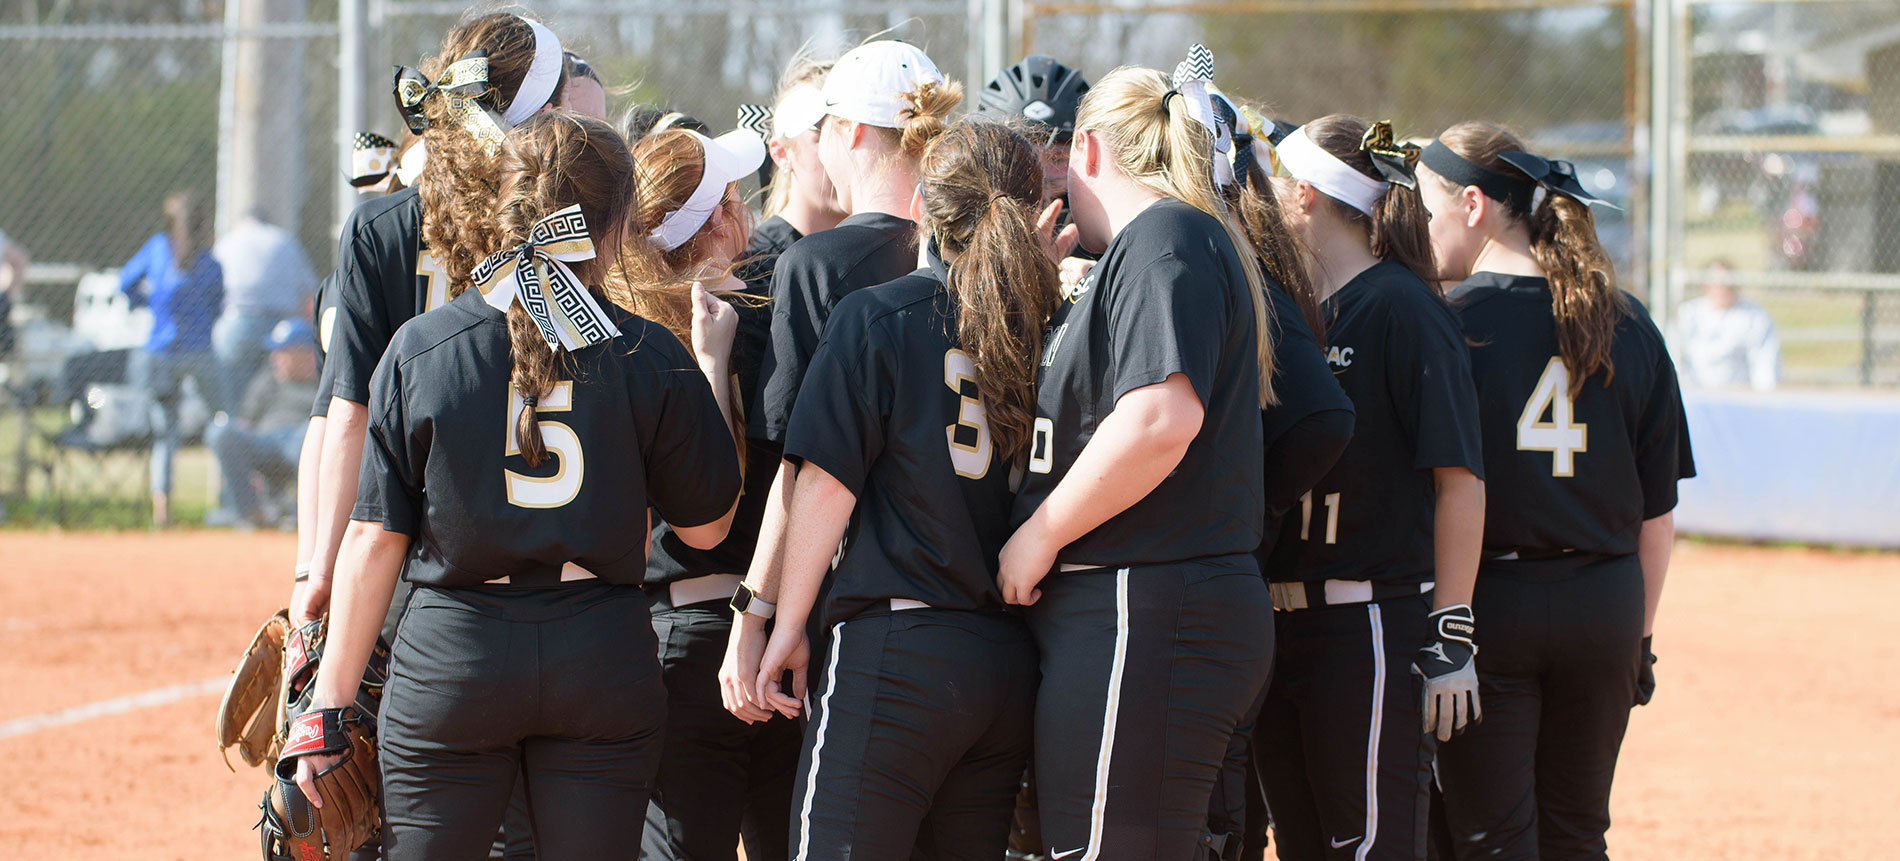 Anderson University Softball Camp Registration Is Now Open